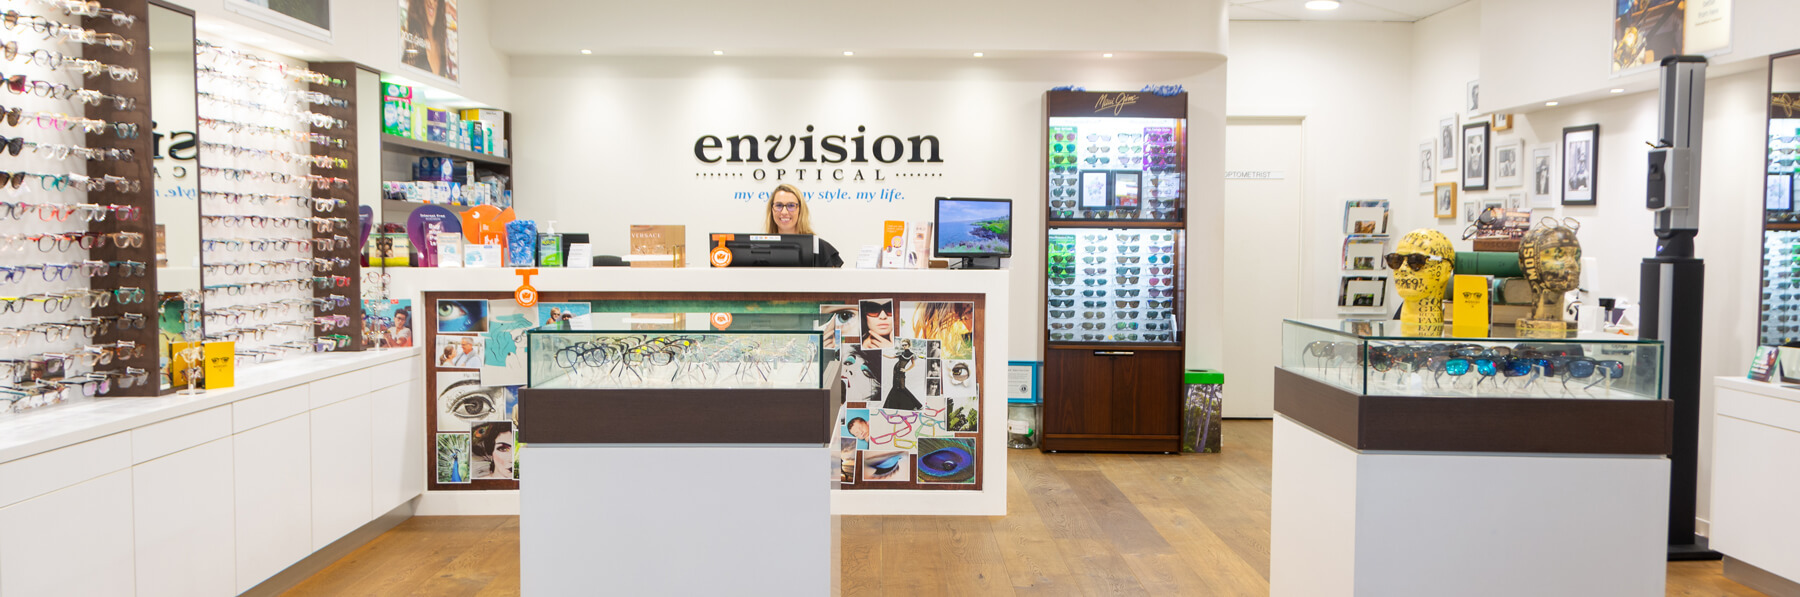 Envision Optical Front Office